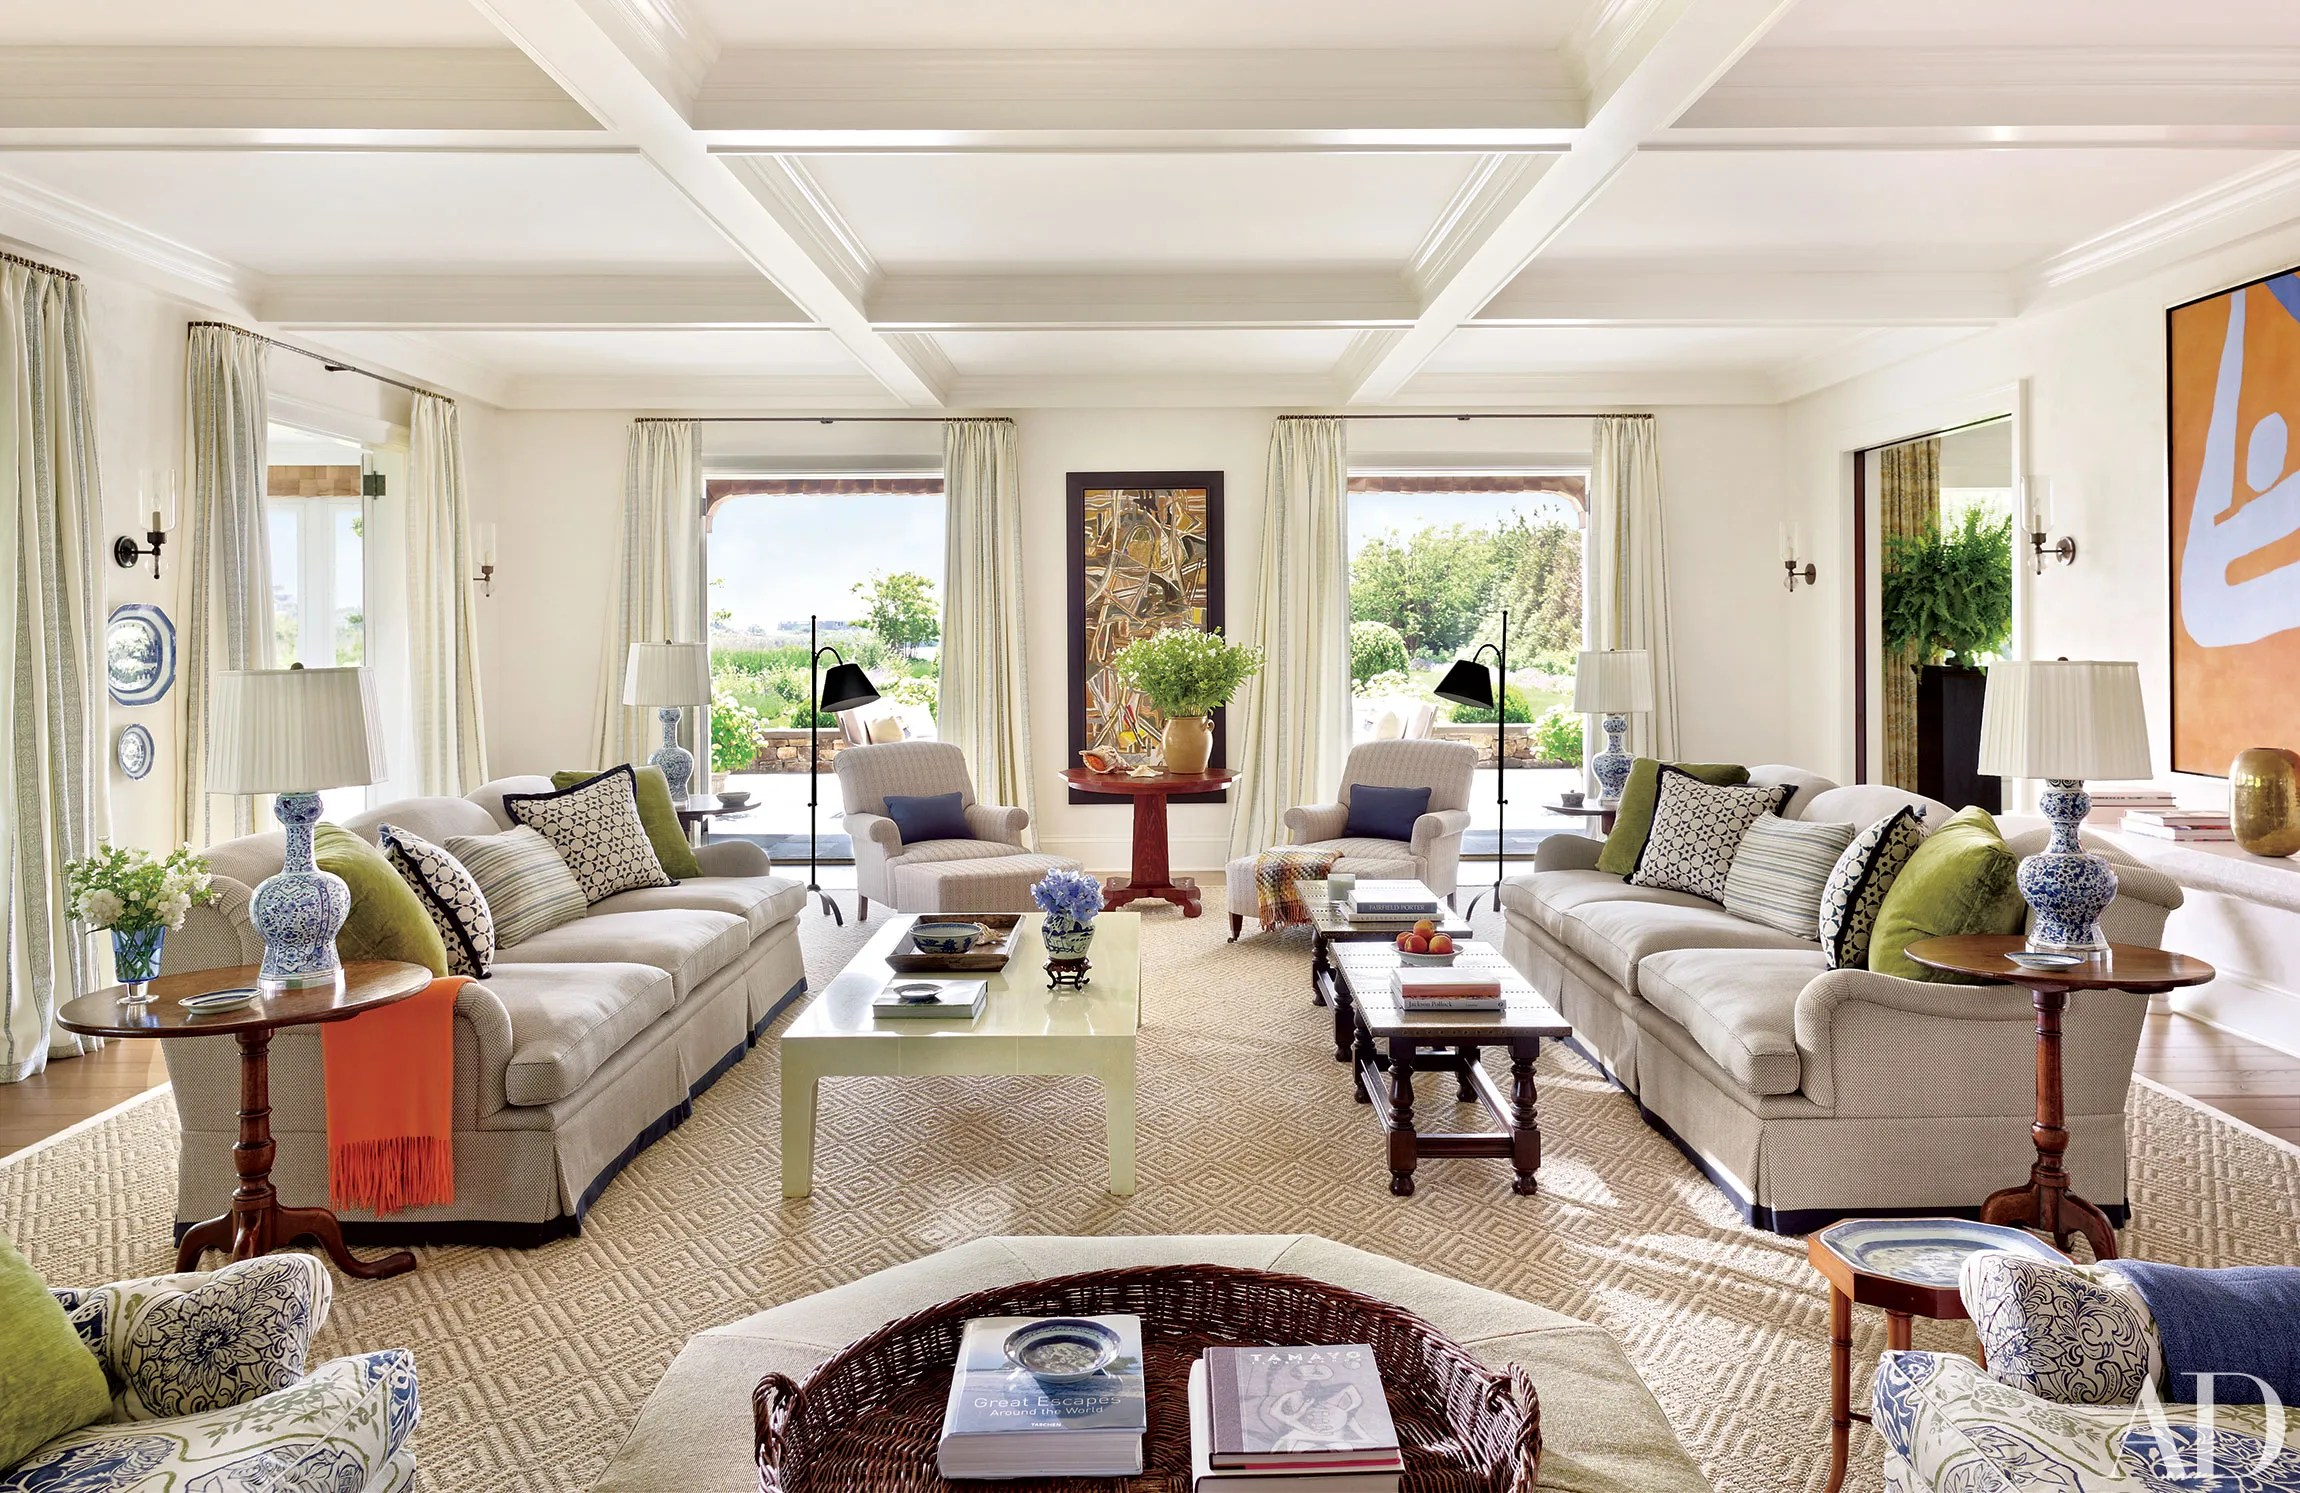 American Classic Living Room Design Chic Designs By Carrier And Company Interiors Photos